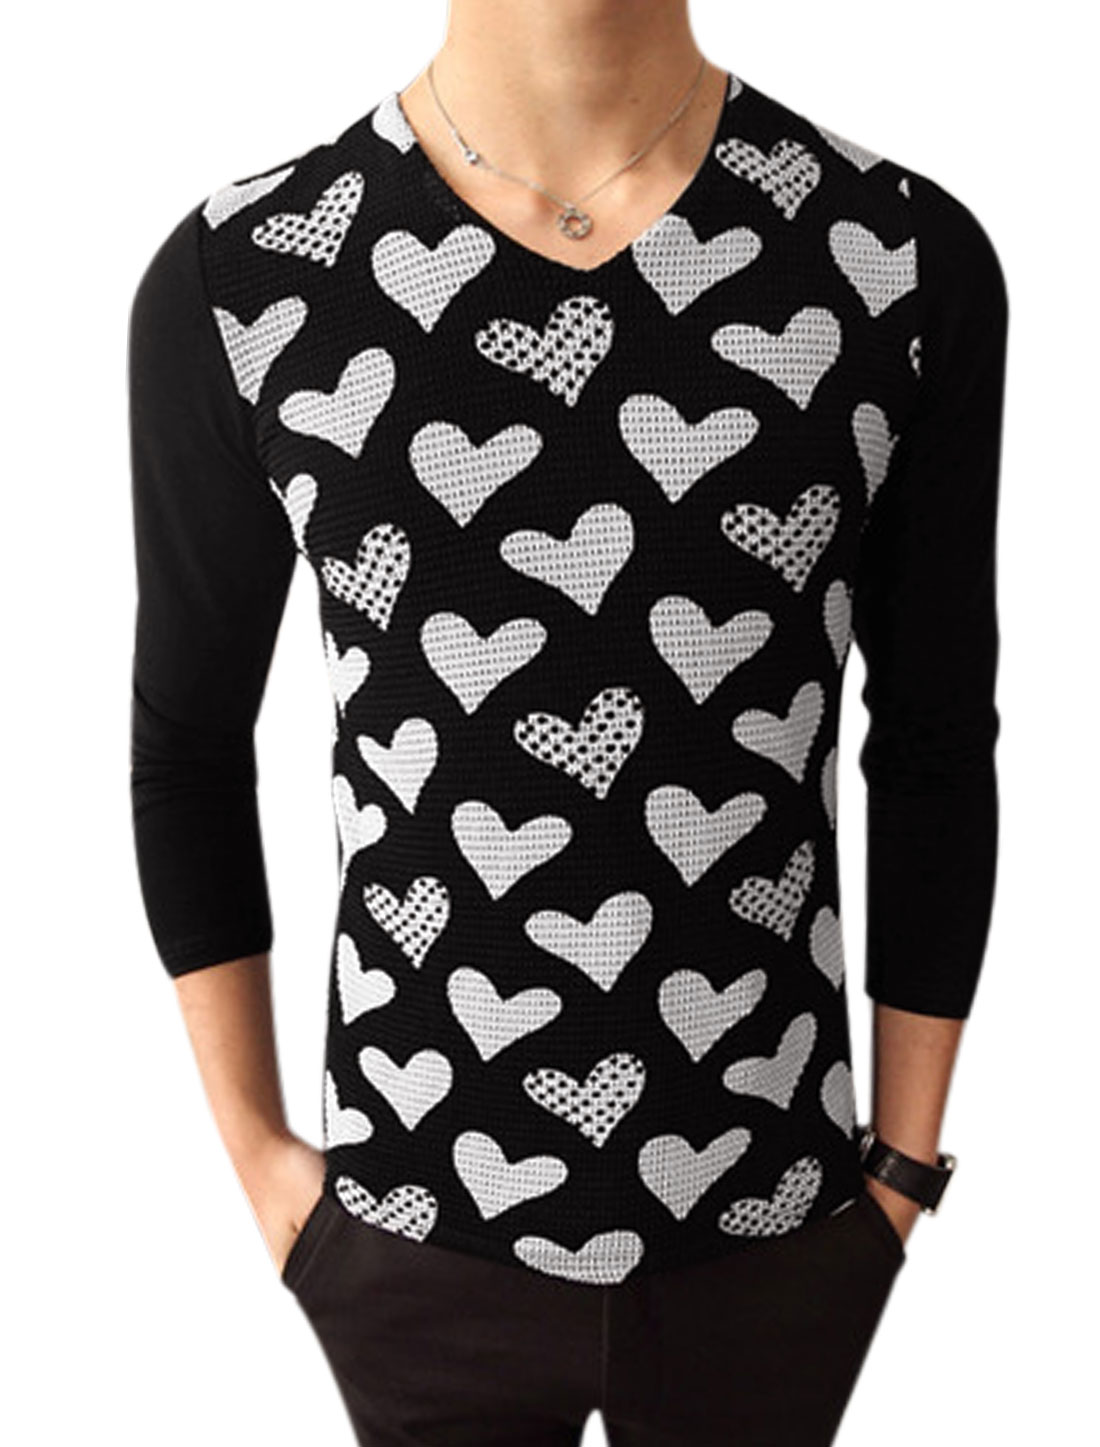 Hearts Pattern V Neck Long Sleeves Casual T-Shirt for Man Black S